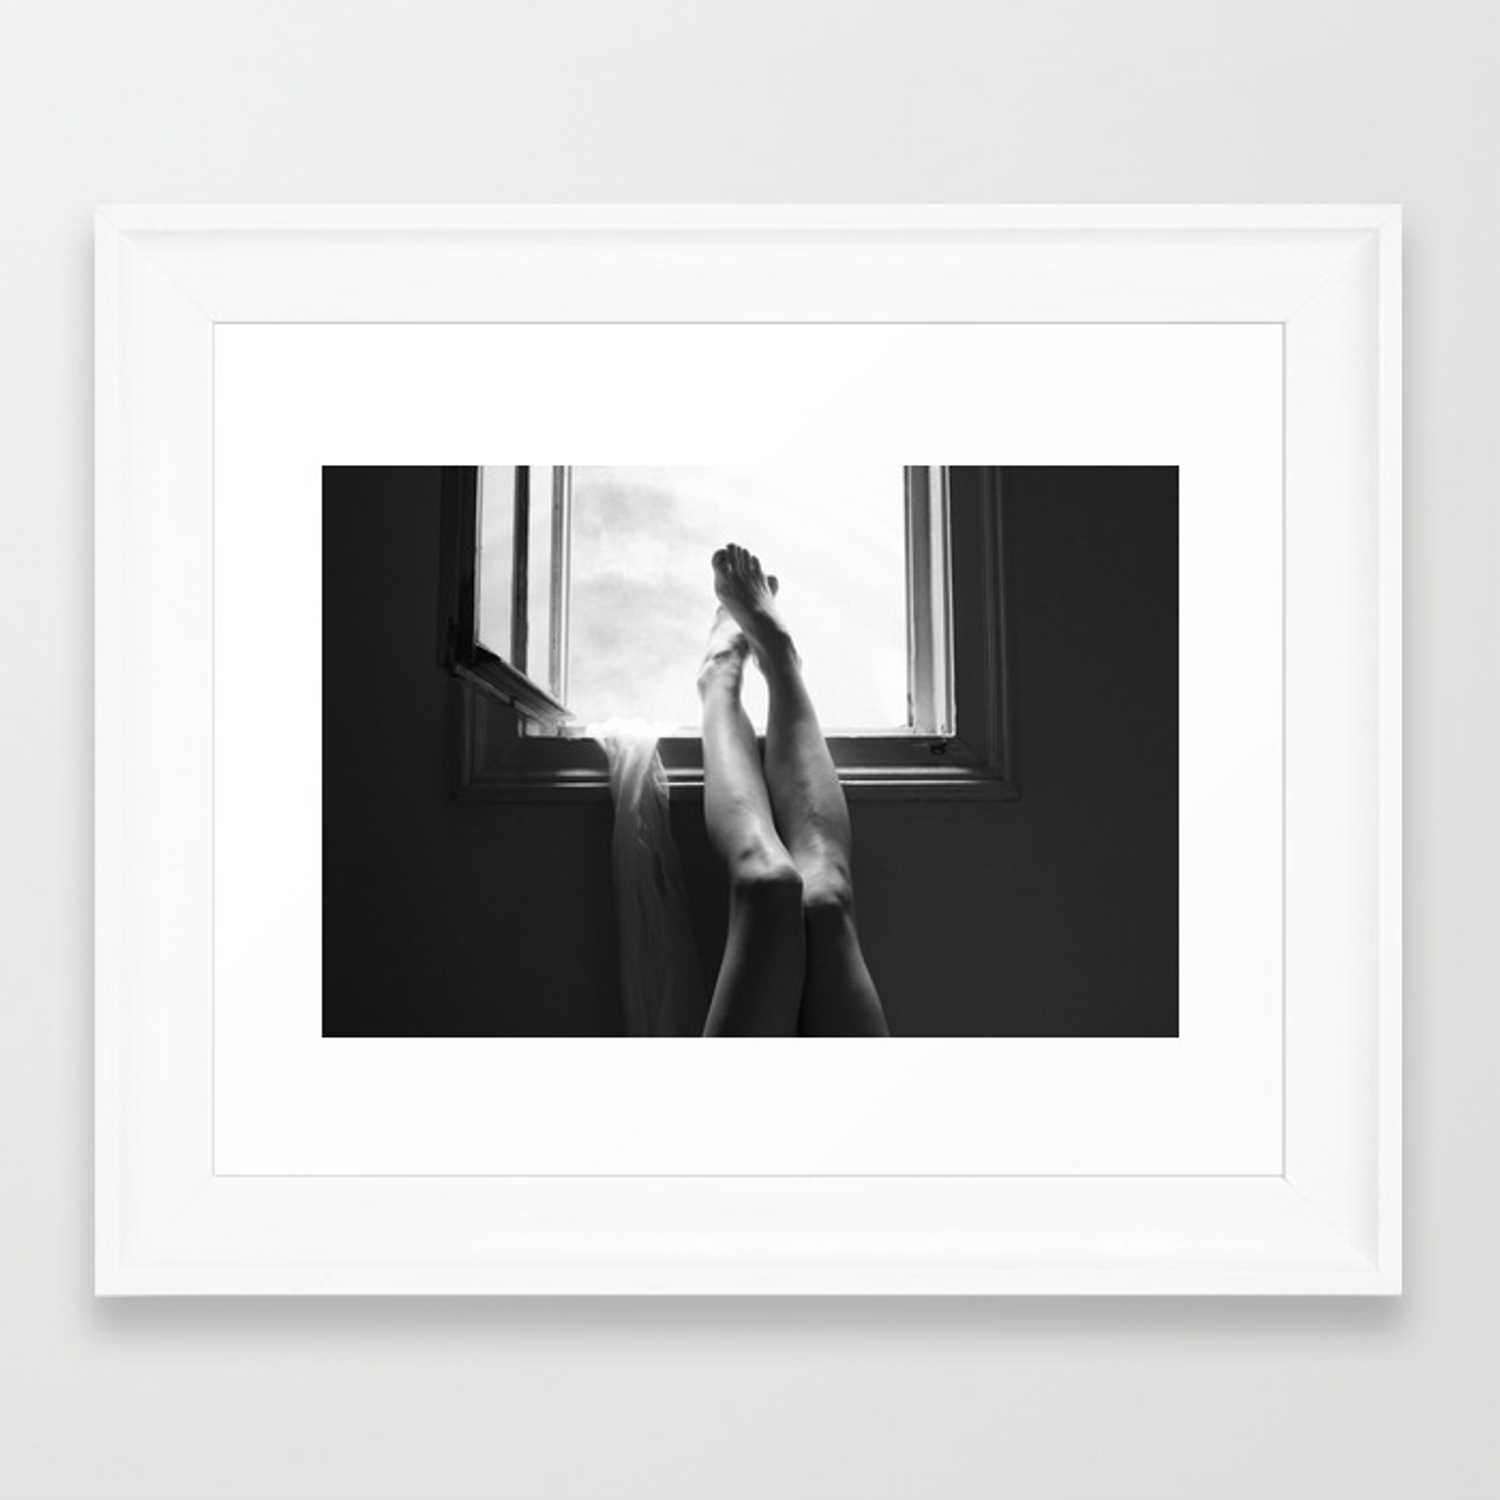 Digital photo photography legs window figure woman black and white framed art print